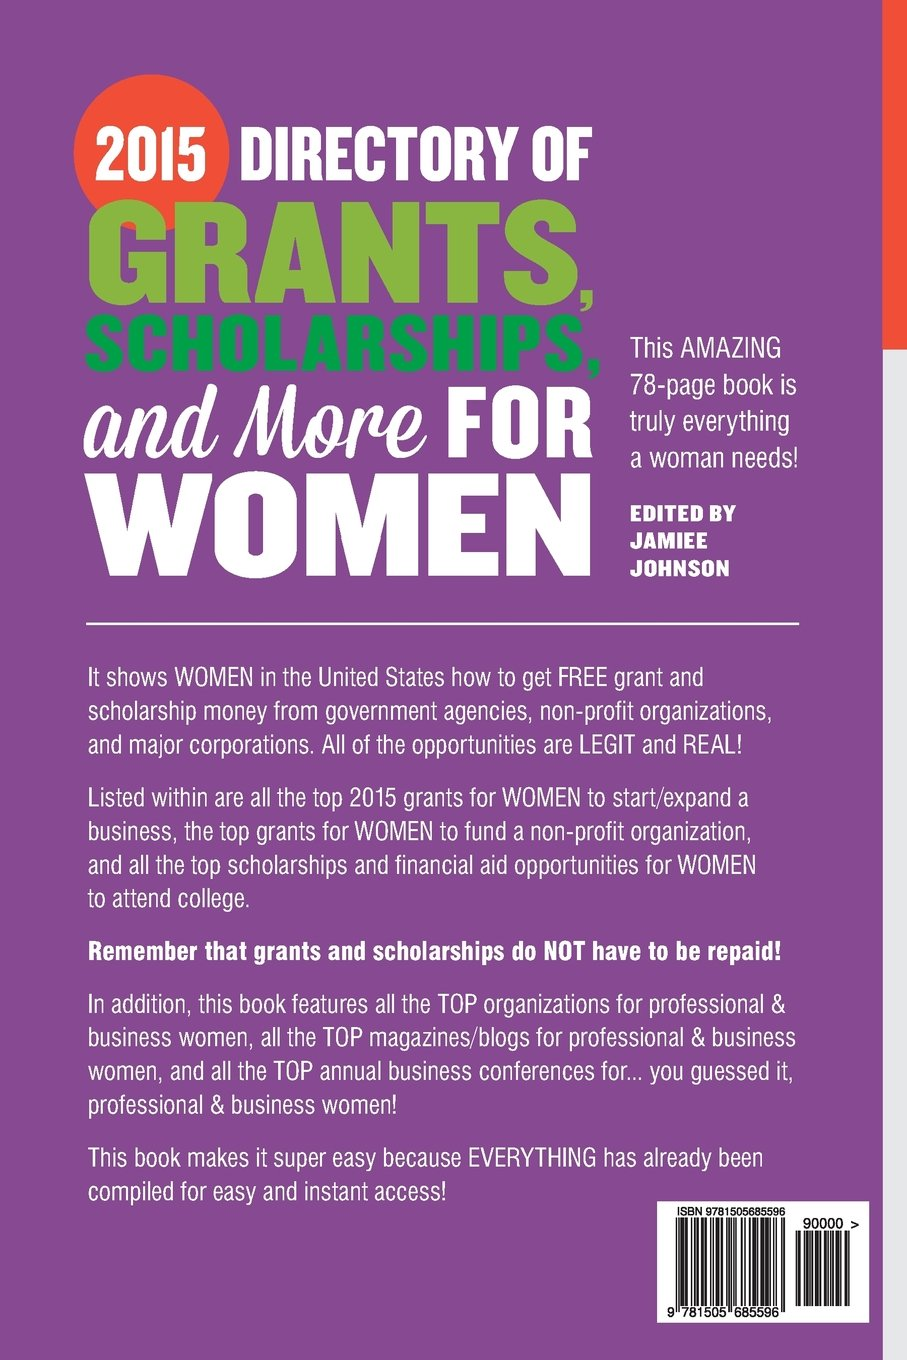 2015 directory of grants scholarships and more for women jamiee 2015 directory of grants scholarships and more for women jamiee johnson 9781505685596 amazon com books